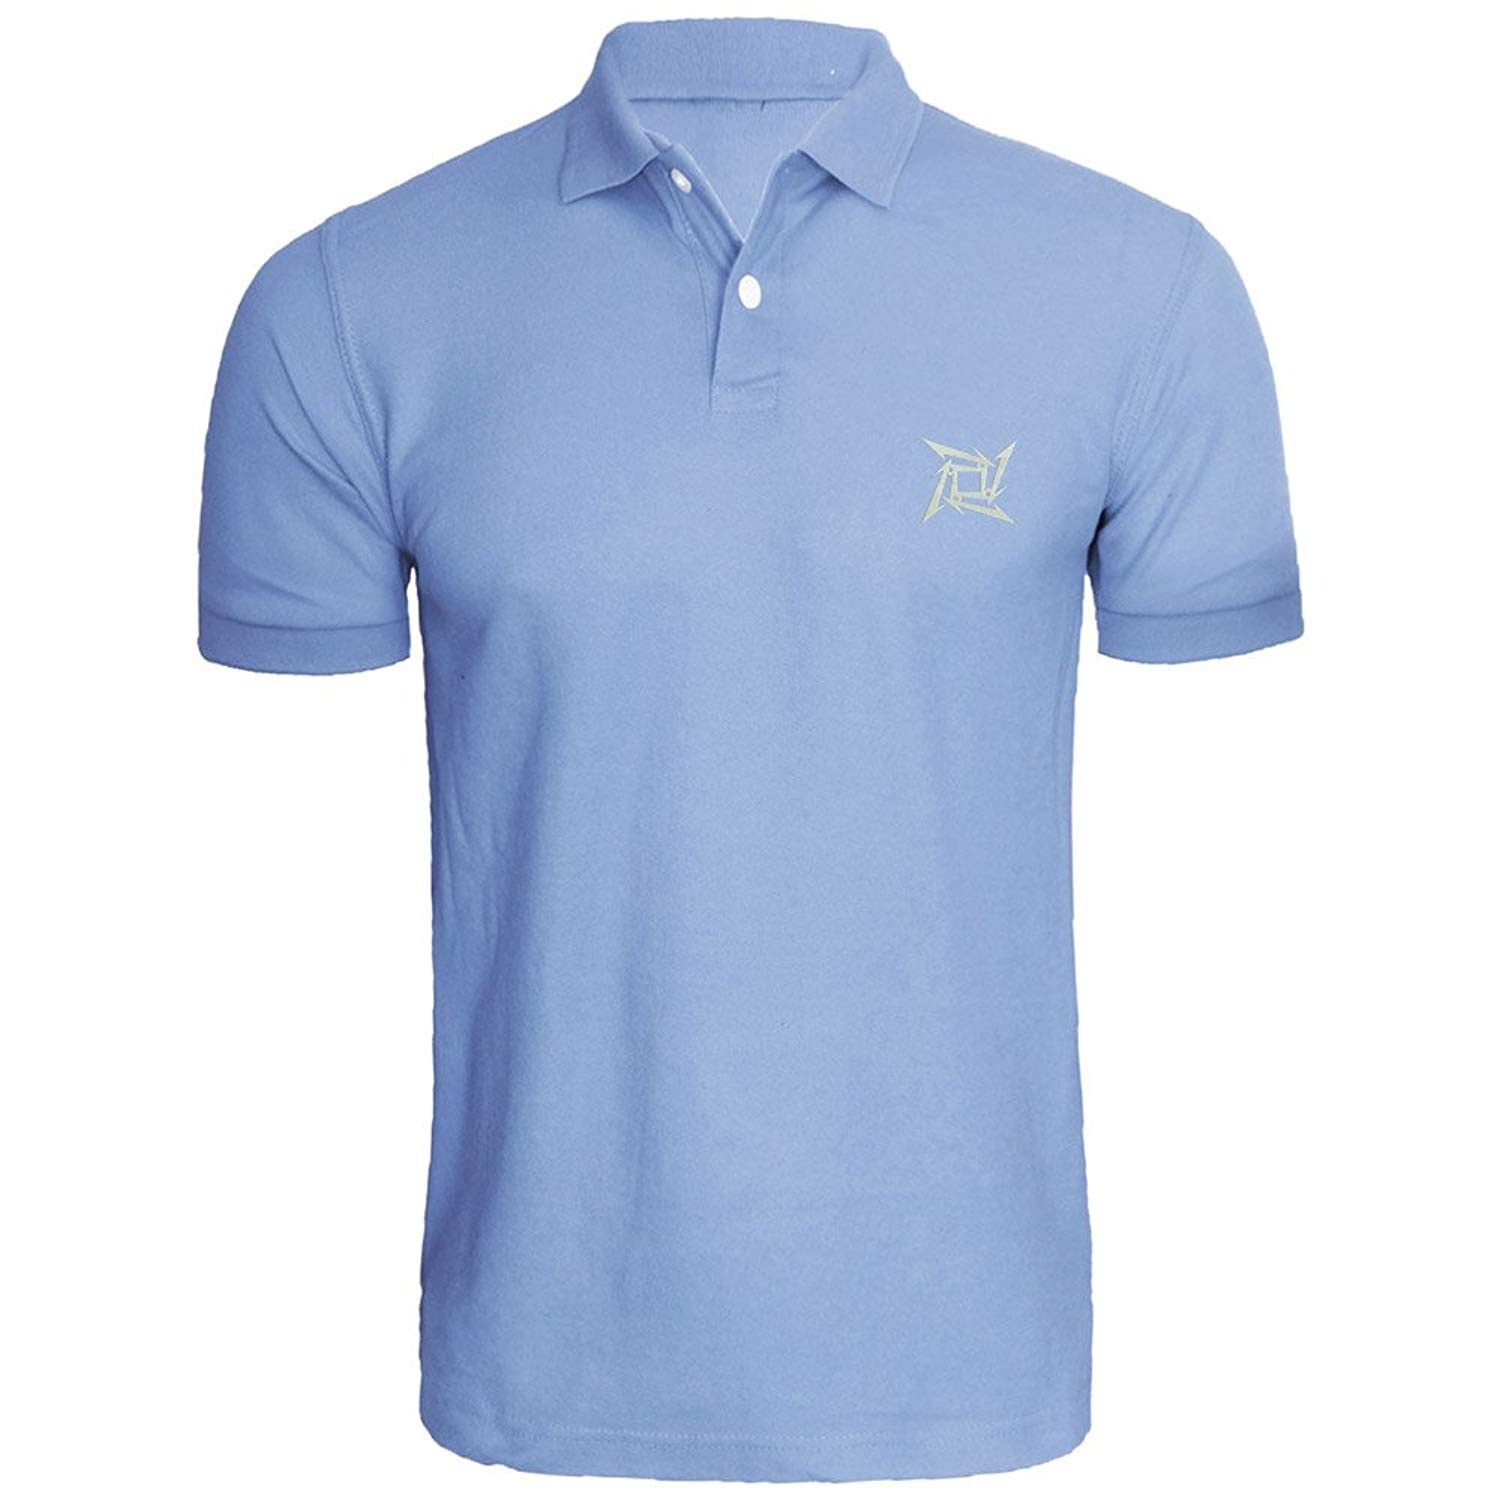 Cheap Logo Polo Shirts Embroidered Find Logo Polo Shirts